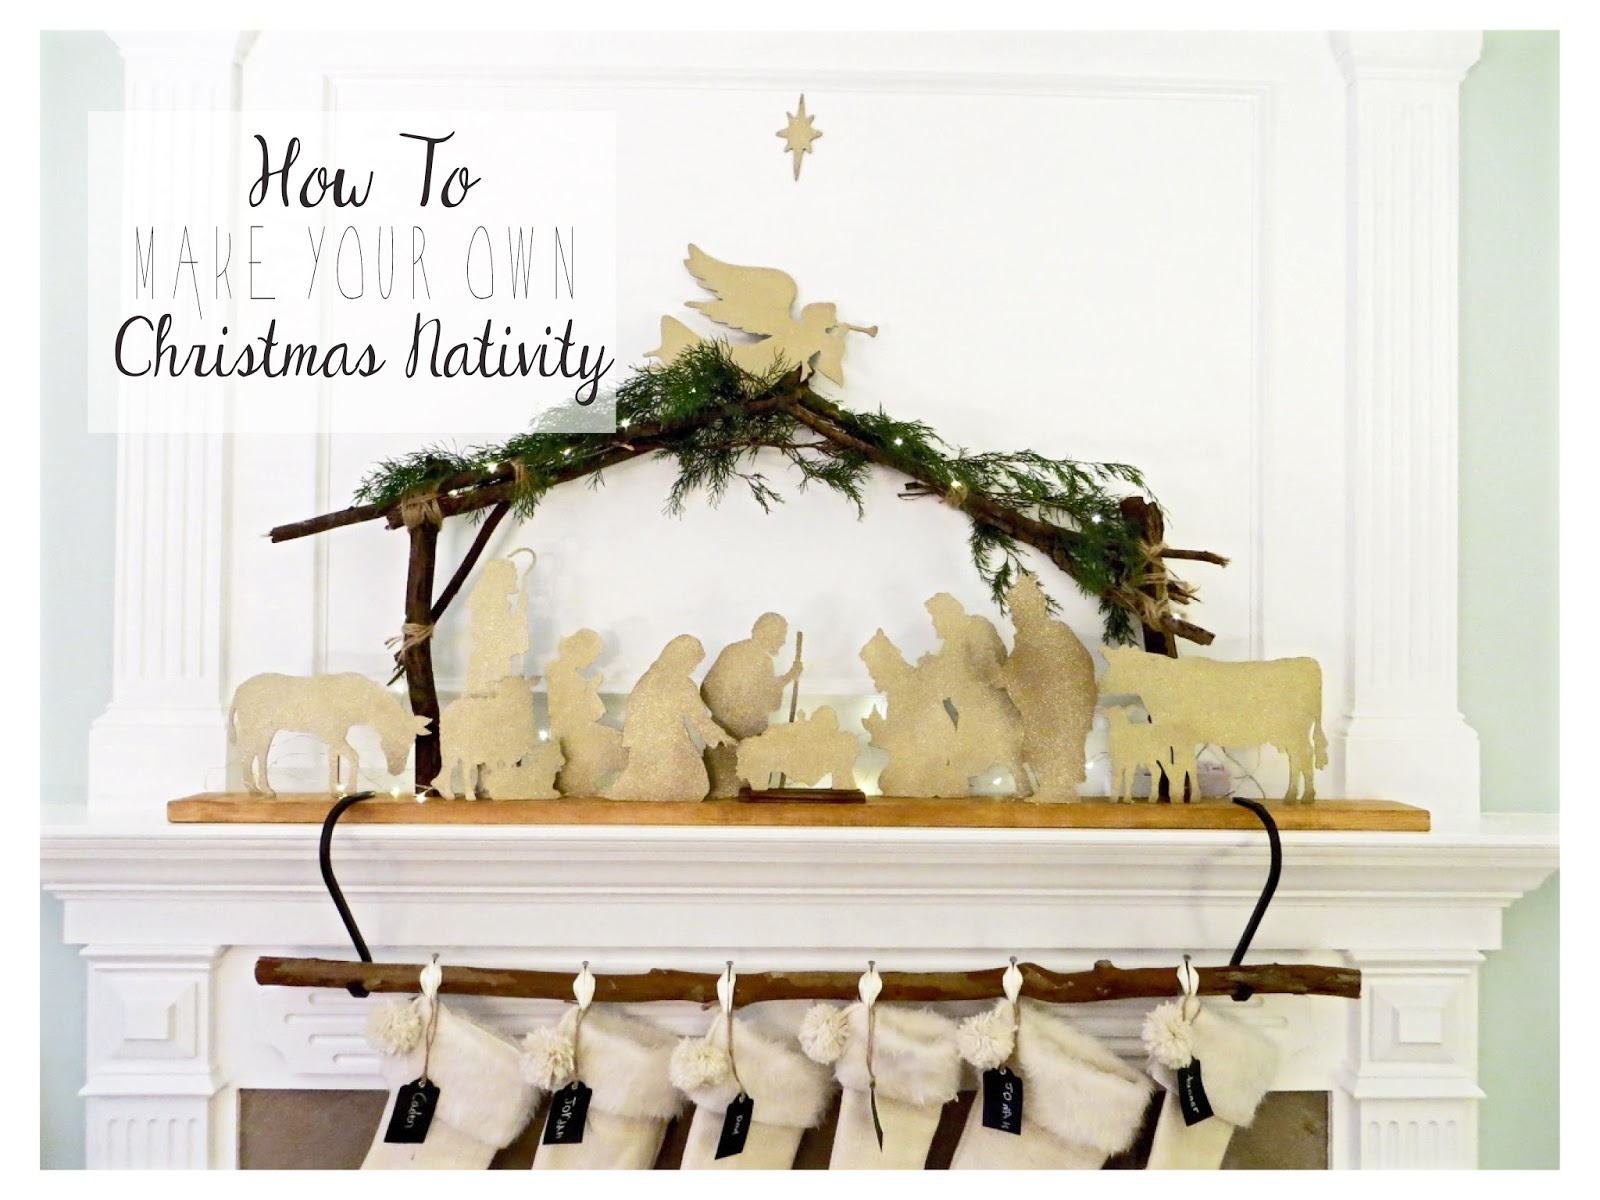 Diy tutorial for making a silhouette christmas nativity scene the diy tutorial for making a silhouette christmas nativity scene solutioingenieria Image collections